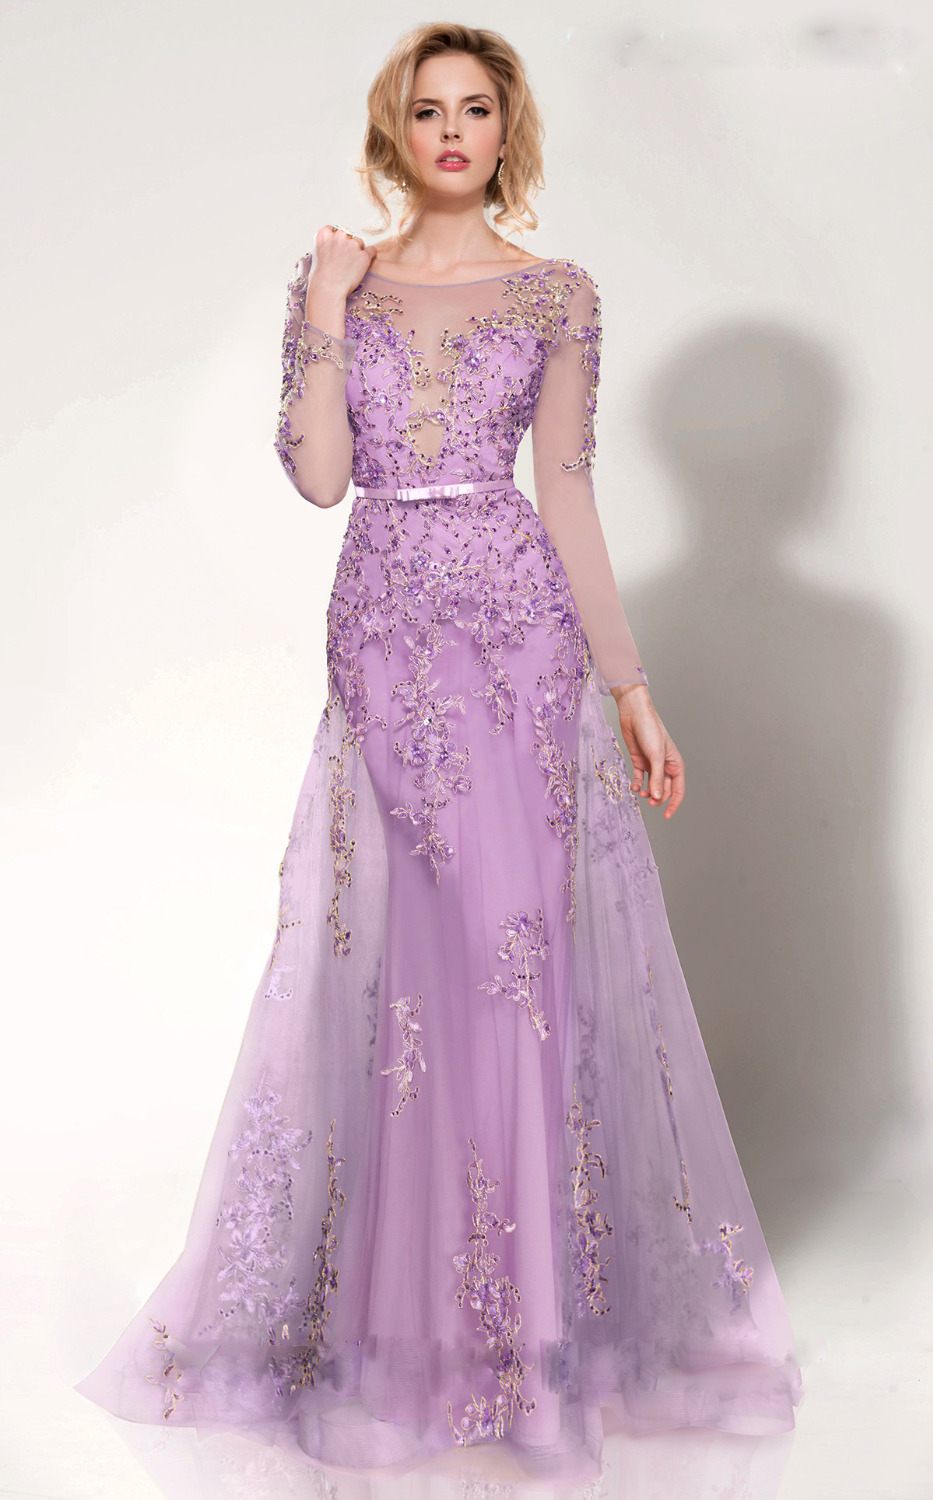 Compare Prices on Light Purple Long Sleeve Prom Dress- Online ...